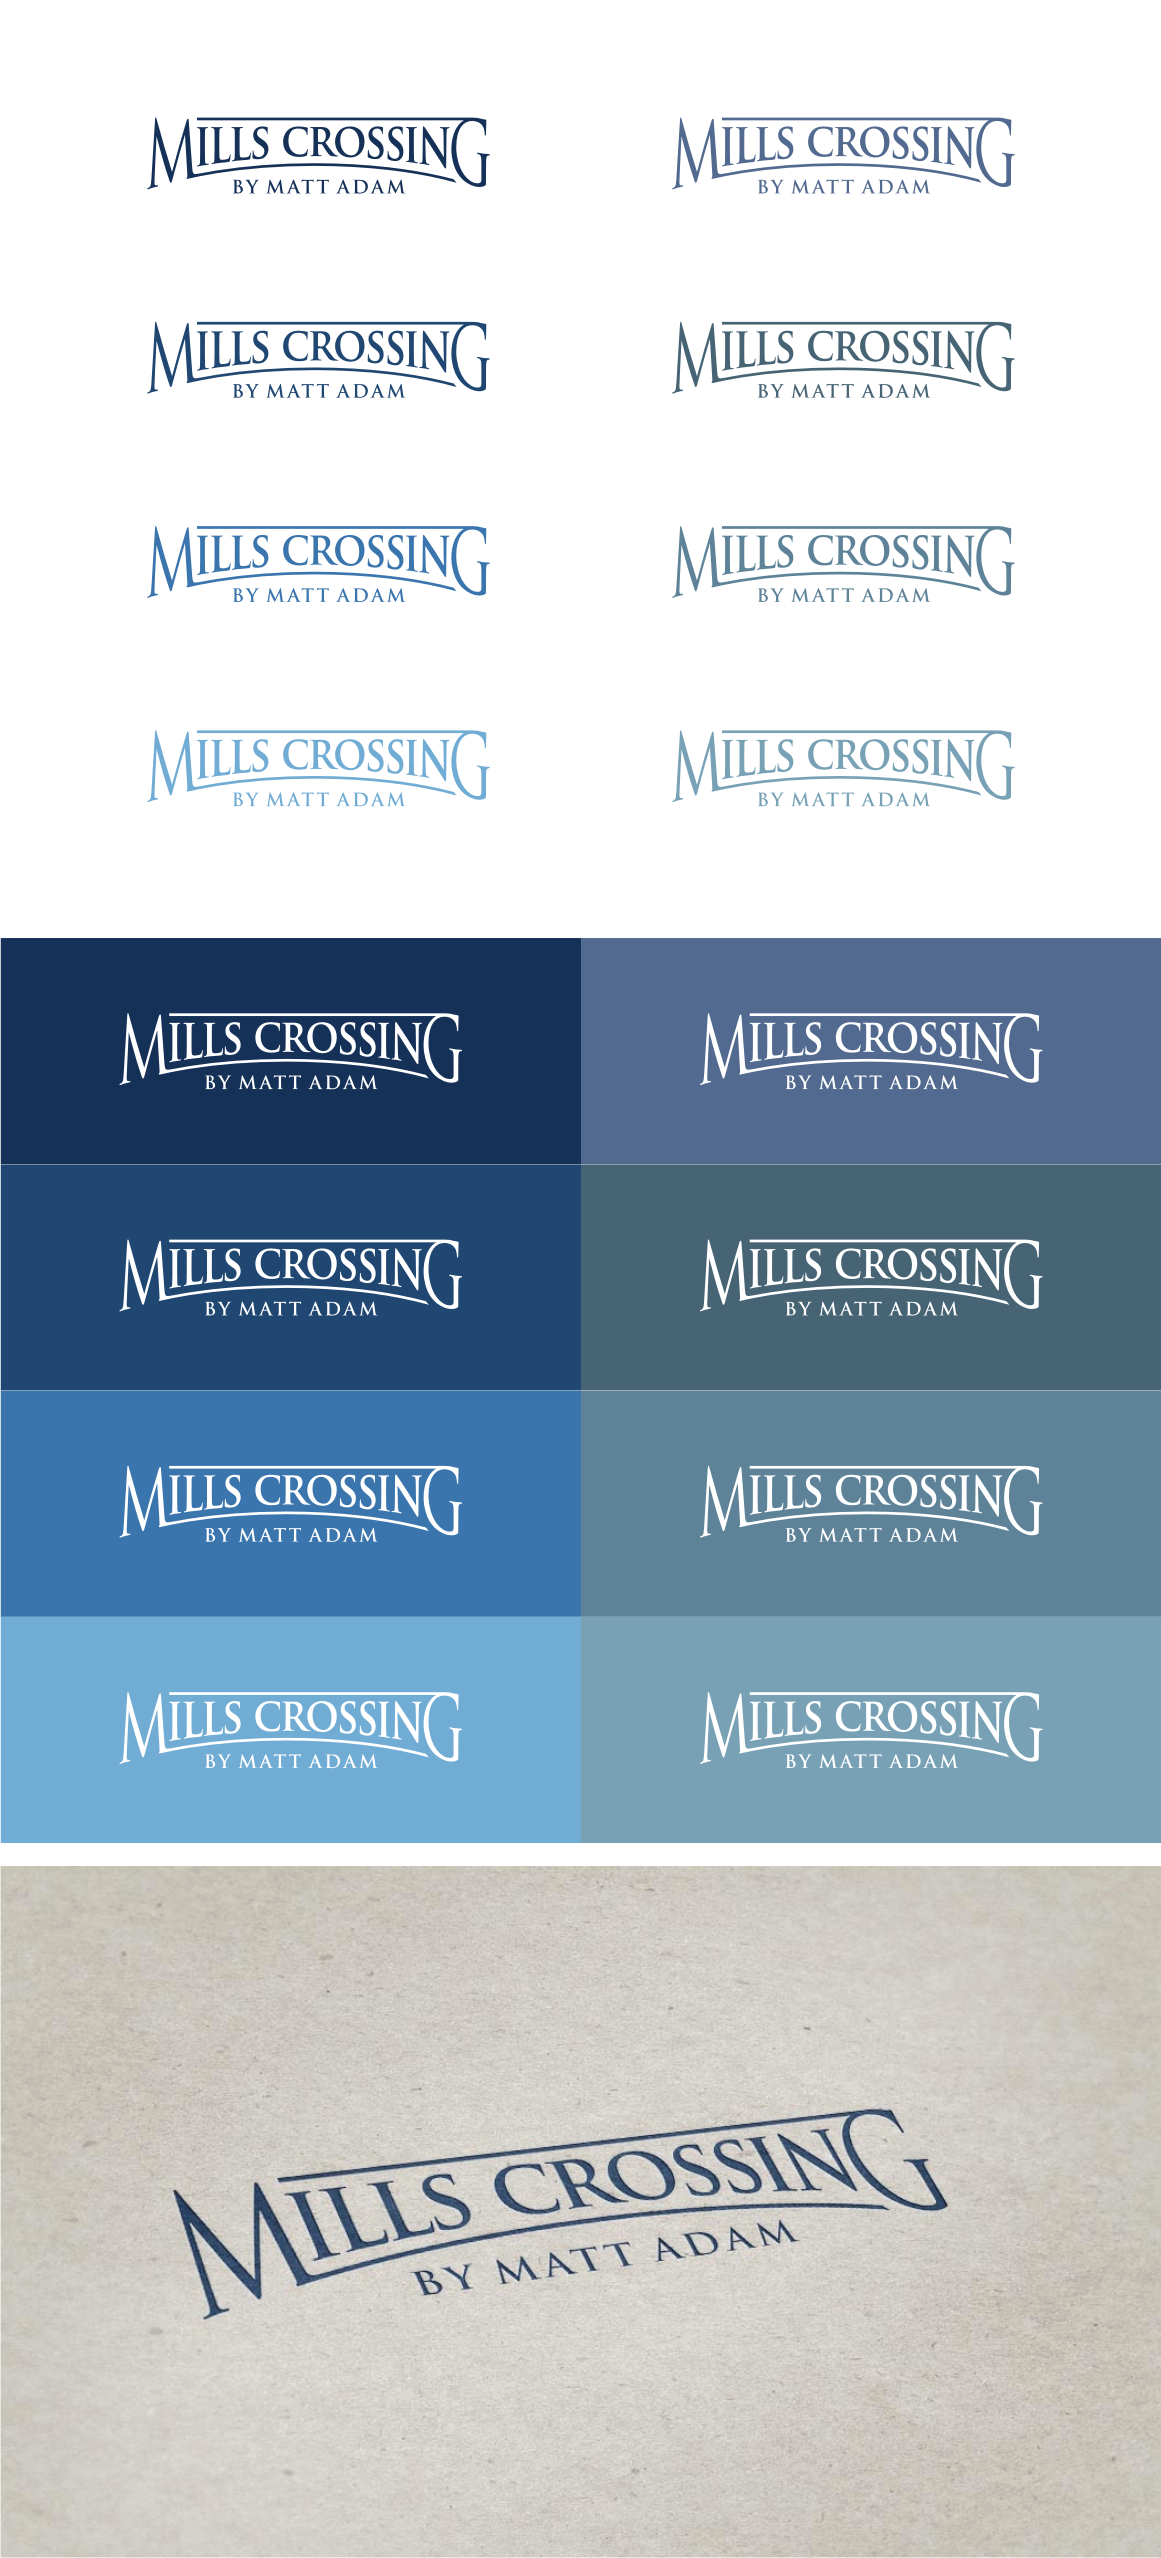 Design a logo for the Mills Crossing community!